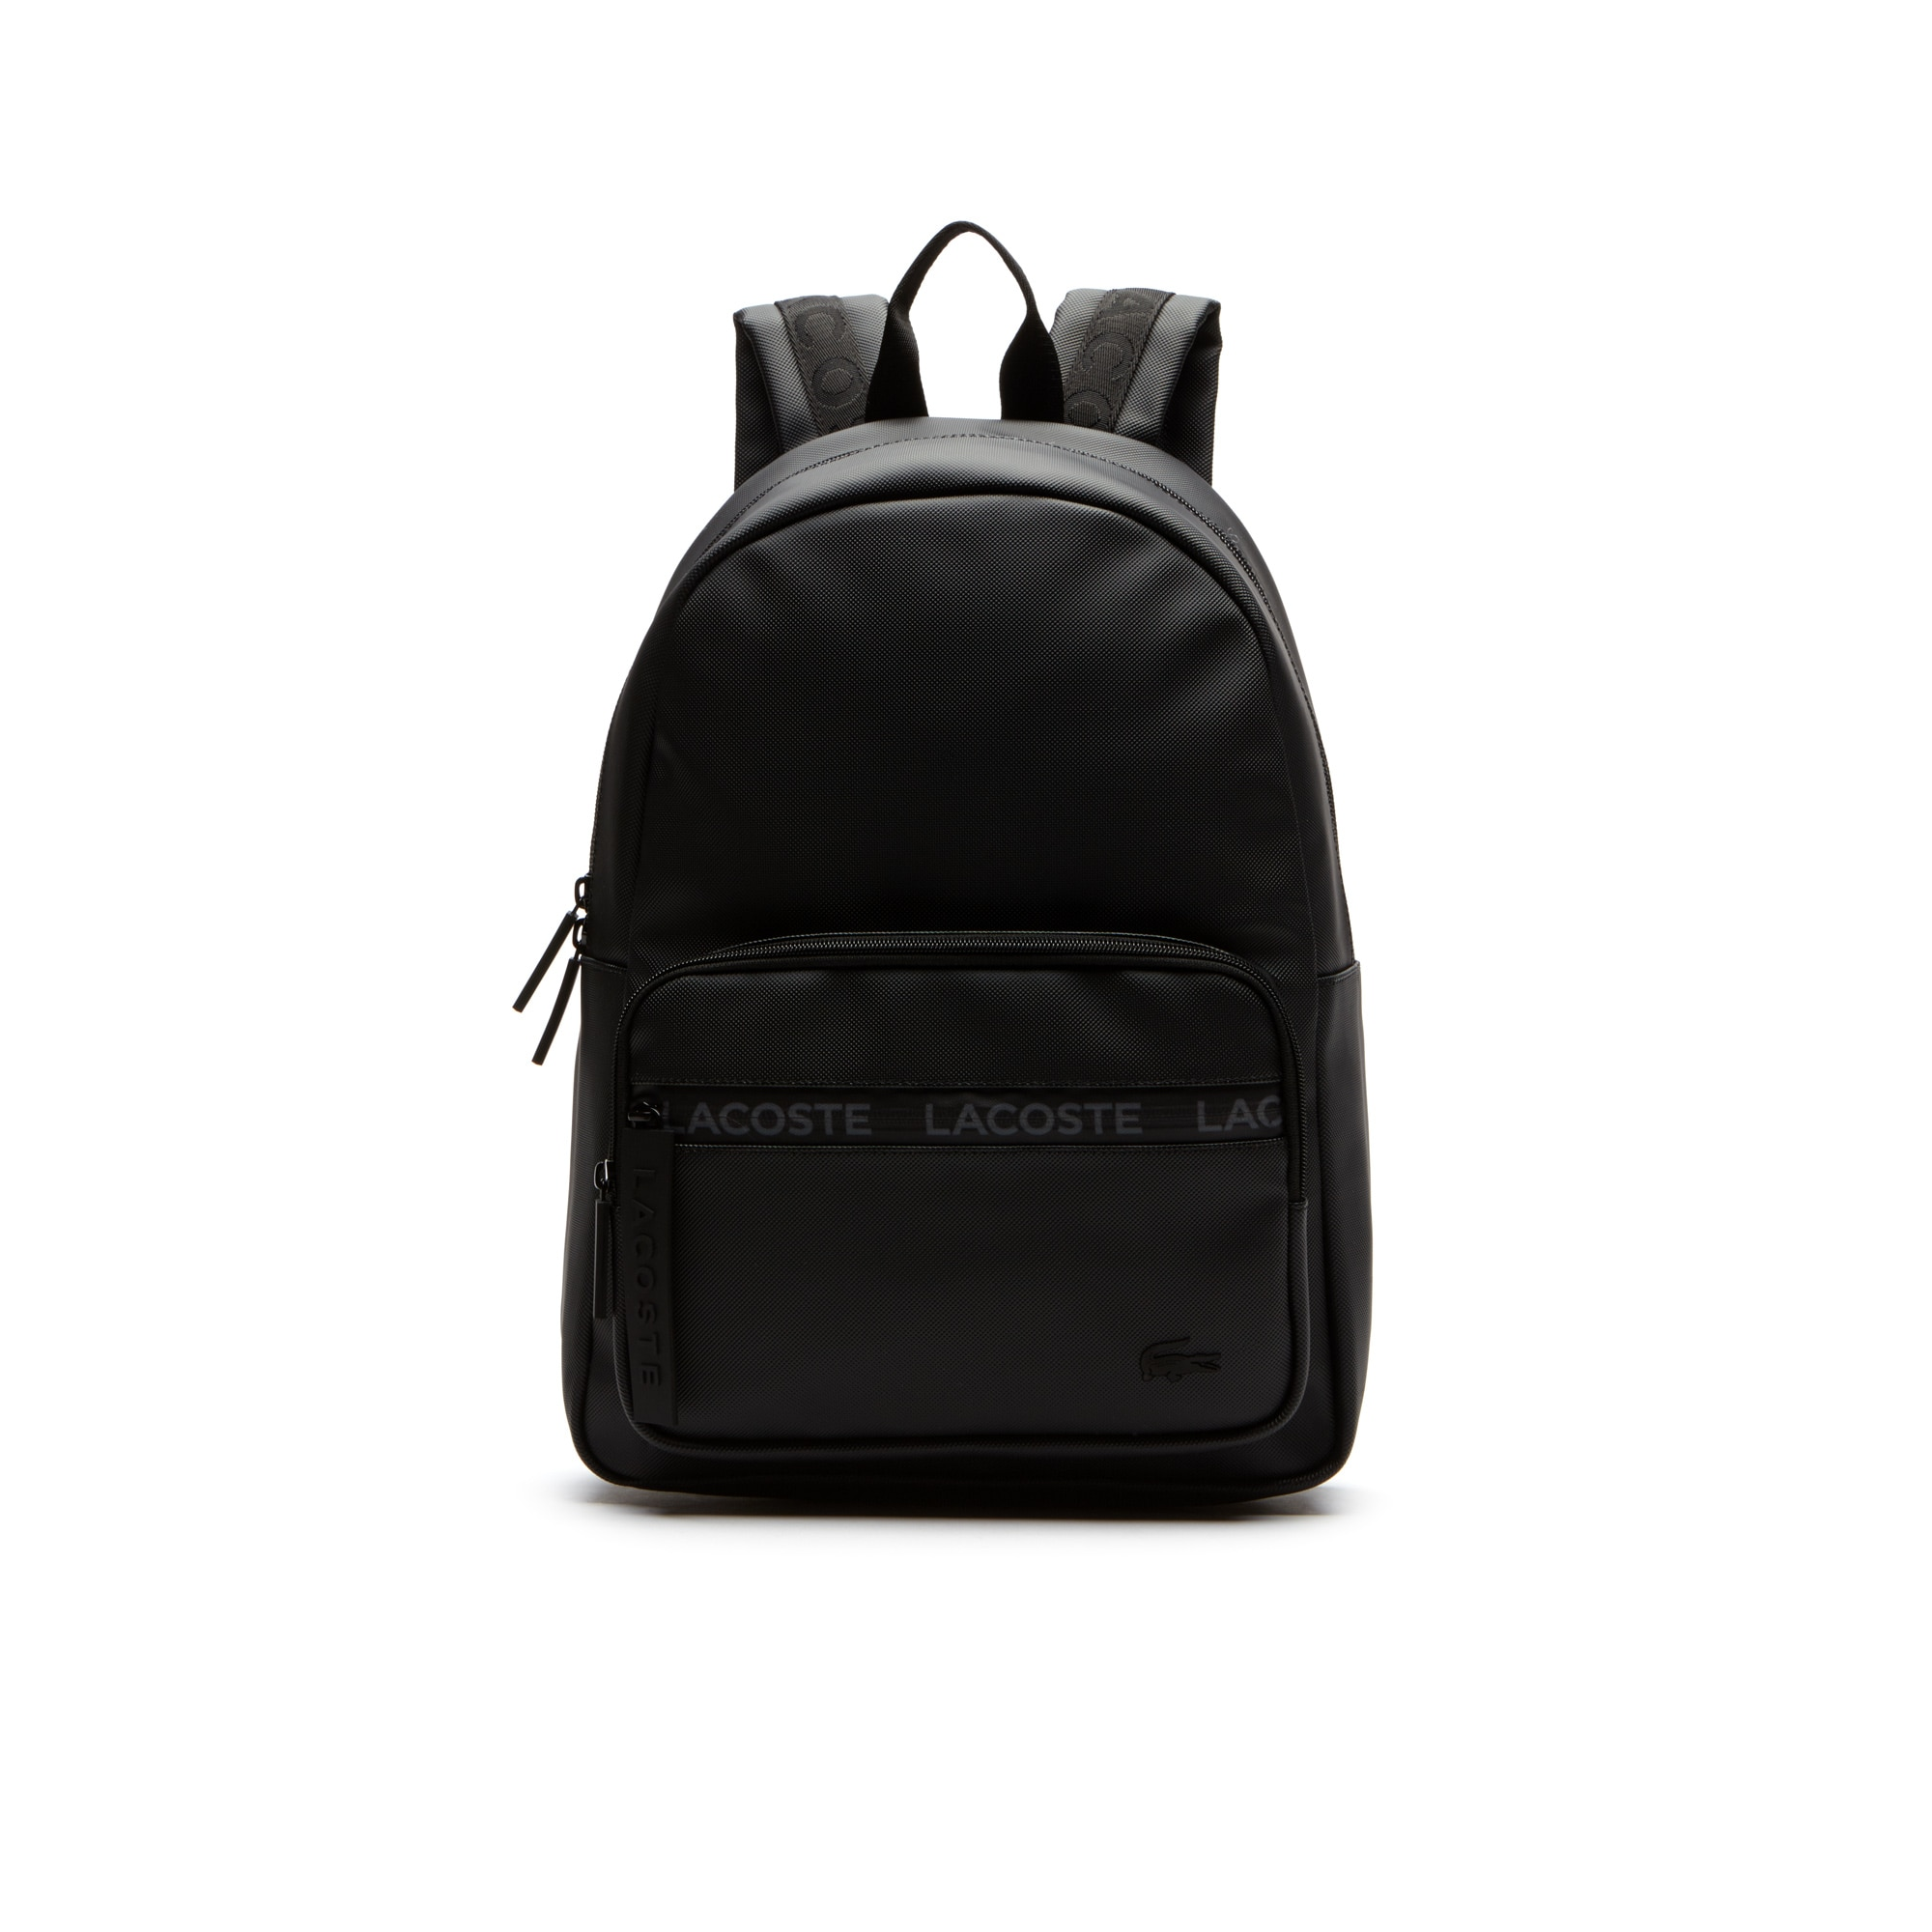 Men's L.12.12 Concept Lacoste Lettering Backpack